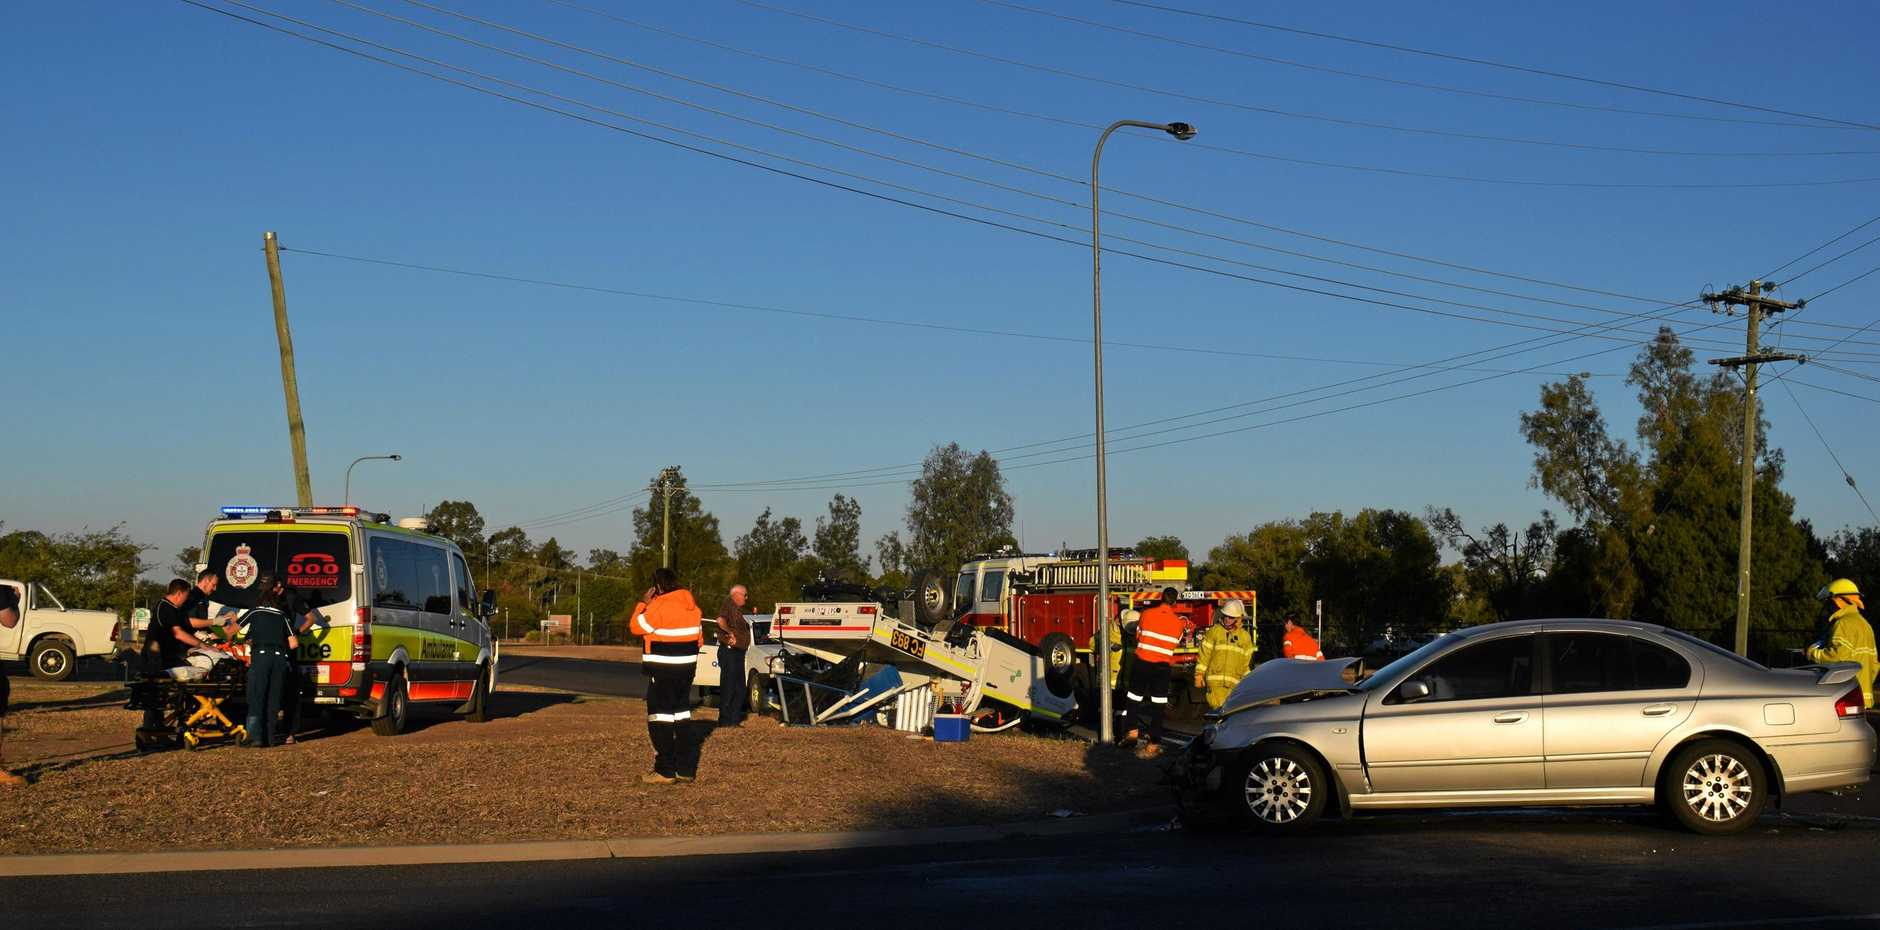 Accident at the corner of Price and Zeller St, Chinchilla.